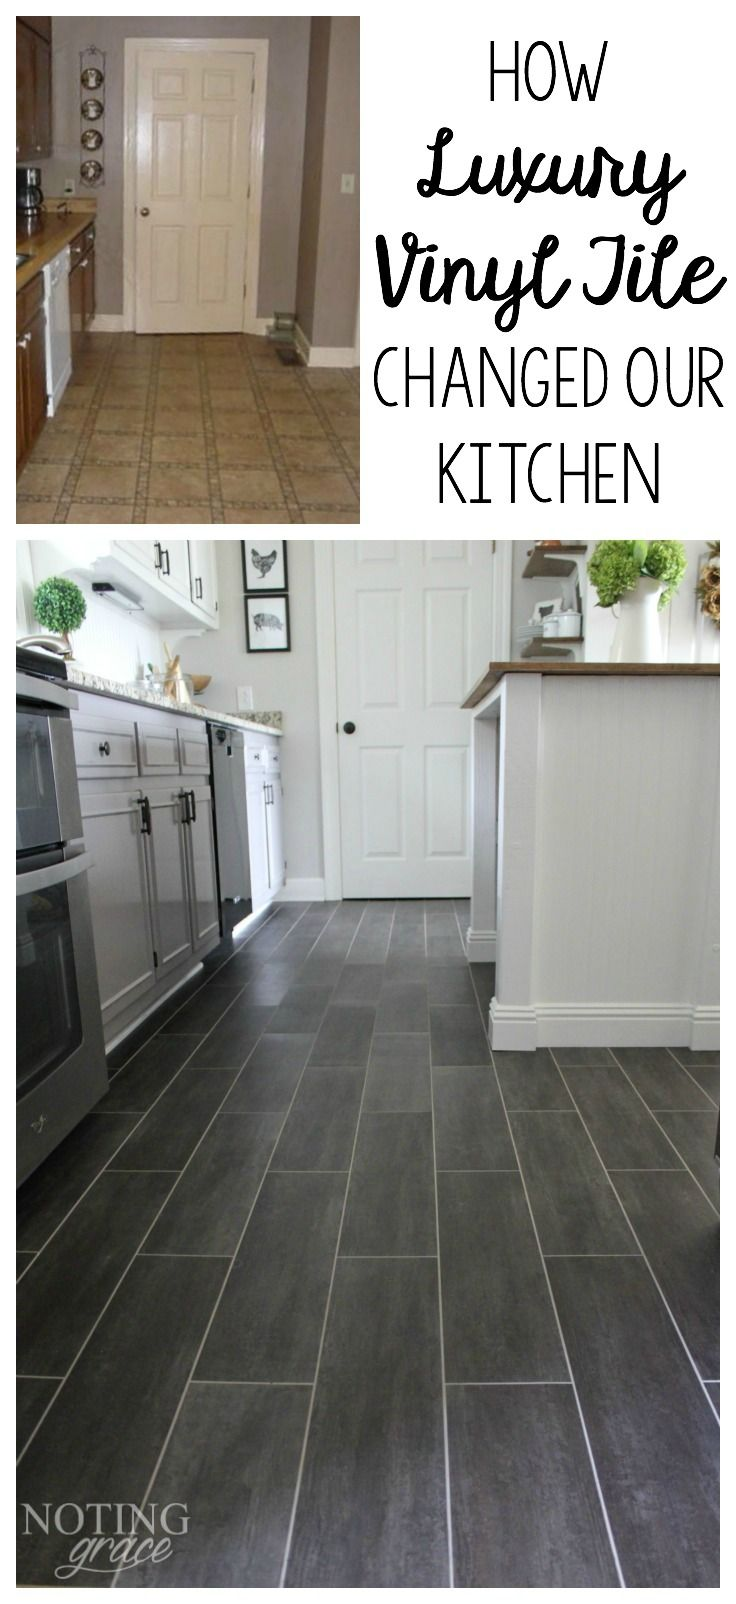 flooring kitchen vinyl flooring How we changed our kitchen in 3 days for less than